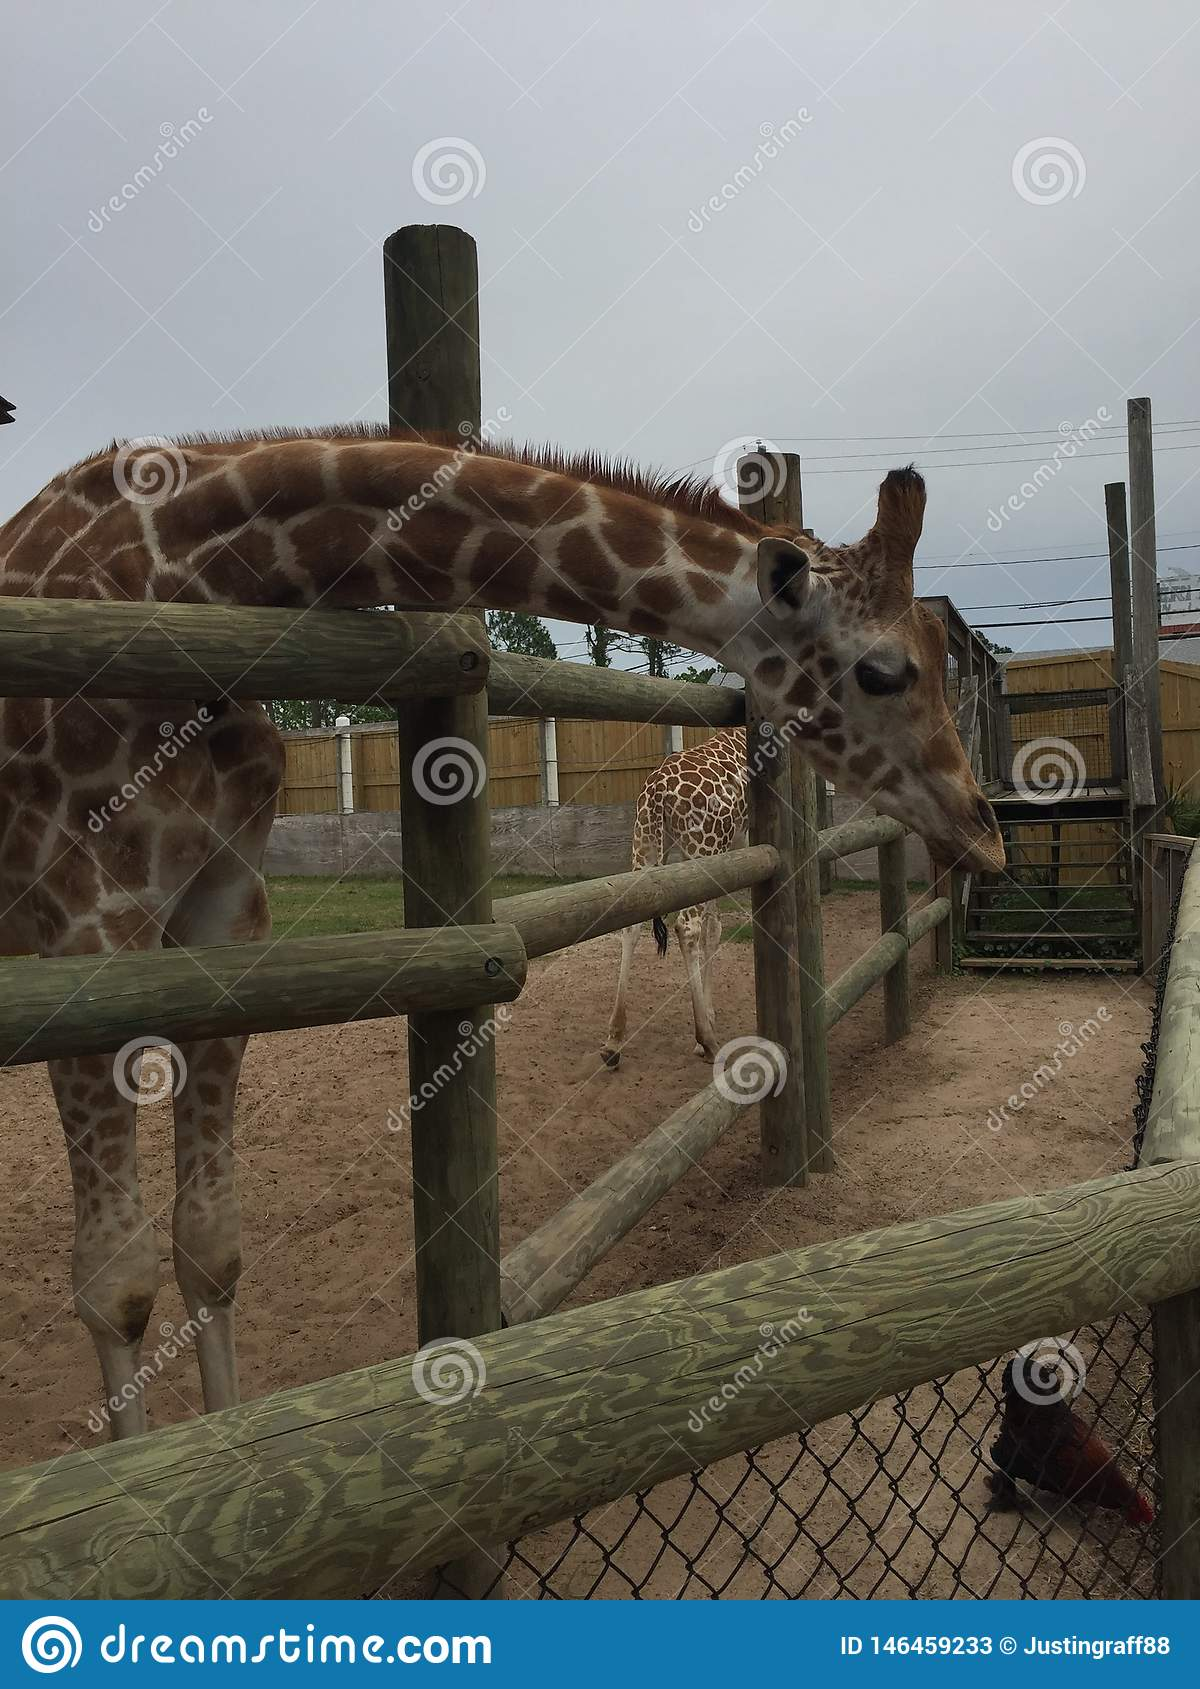 Pair of Giraffes in a wooden pen being fed lettuce with the head approaching the camera great nature shot with wildlife